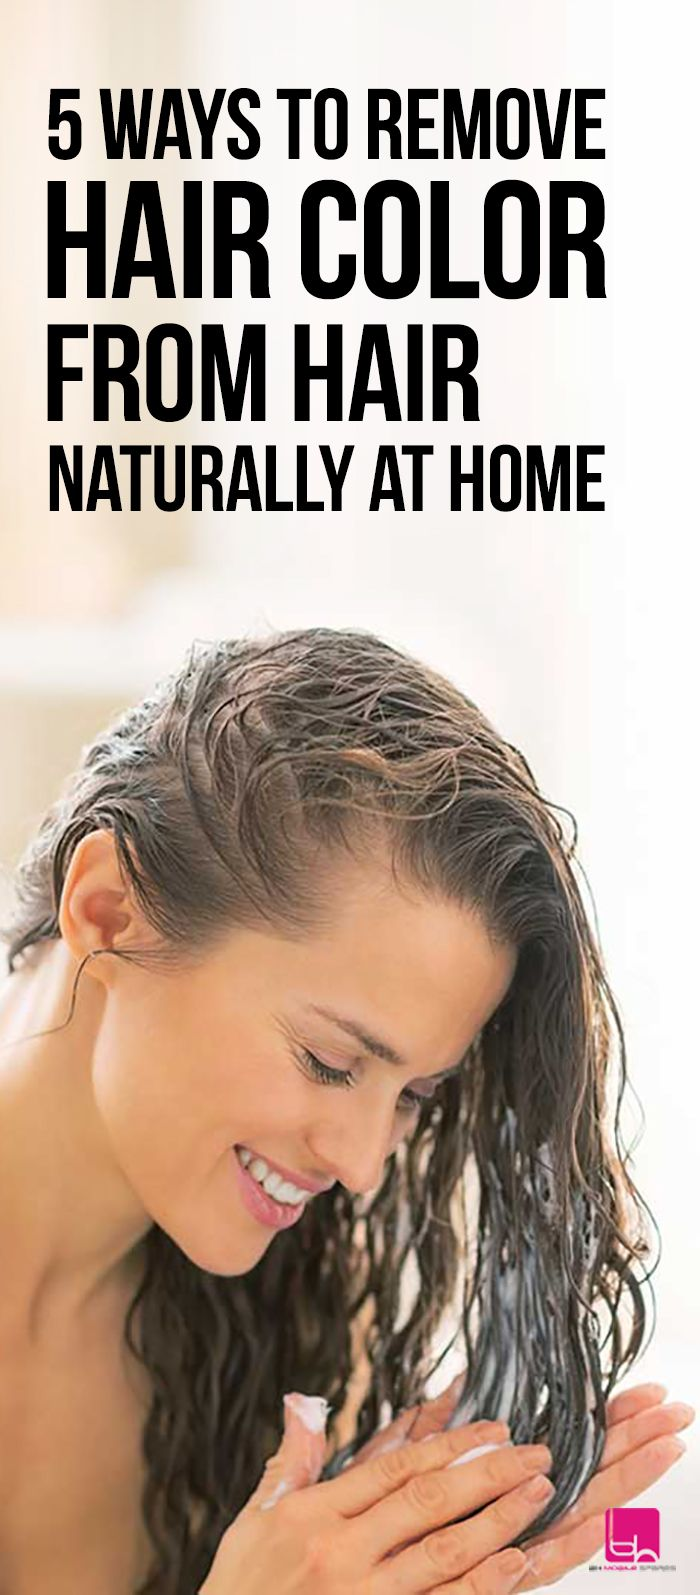 5 Easy Ways to Remove Hair Color from Hair Naturally at home